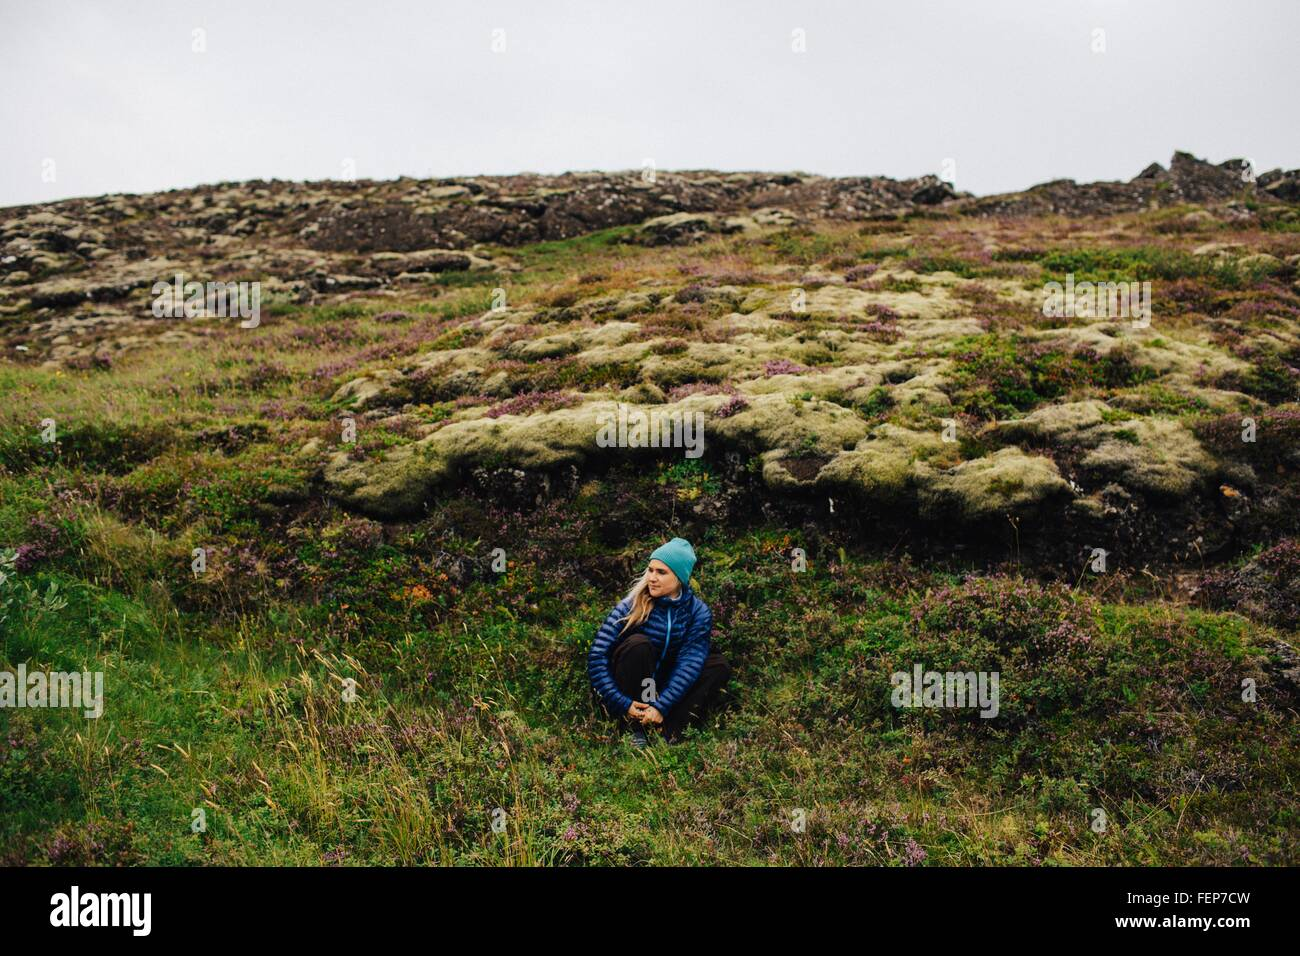 Mid adult woman crouched in front of mound wearing knit hat looking away, Iceland Stock Photo